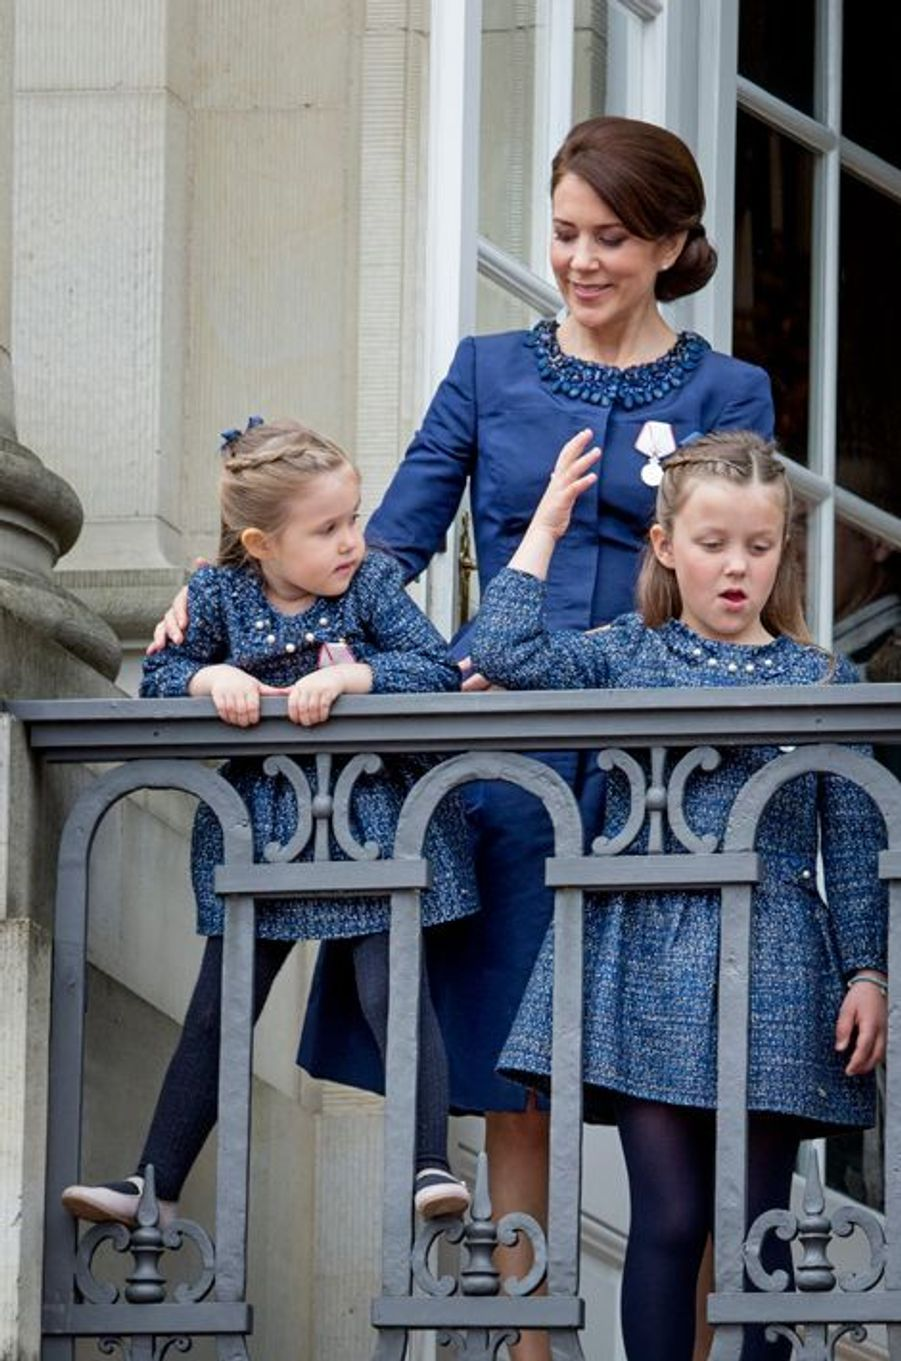 La princesse Mary de Danemark et ses filles à Copenhague, le 16 avril 2015